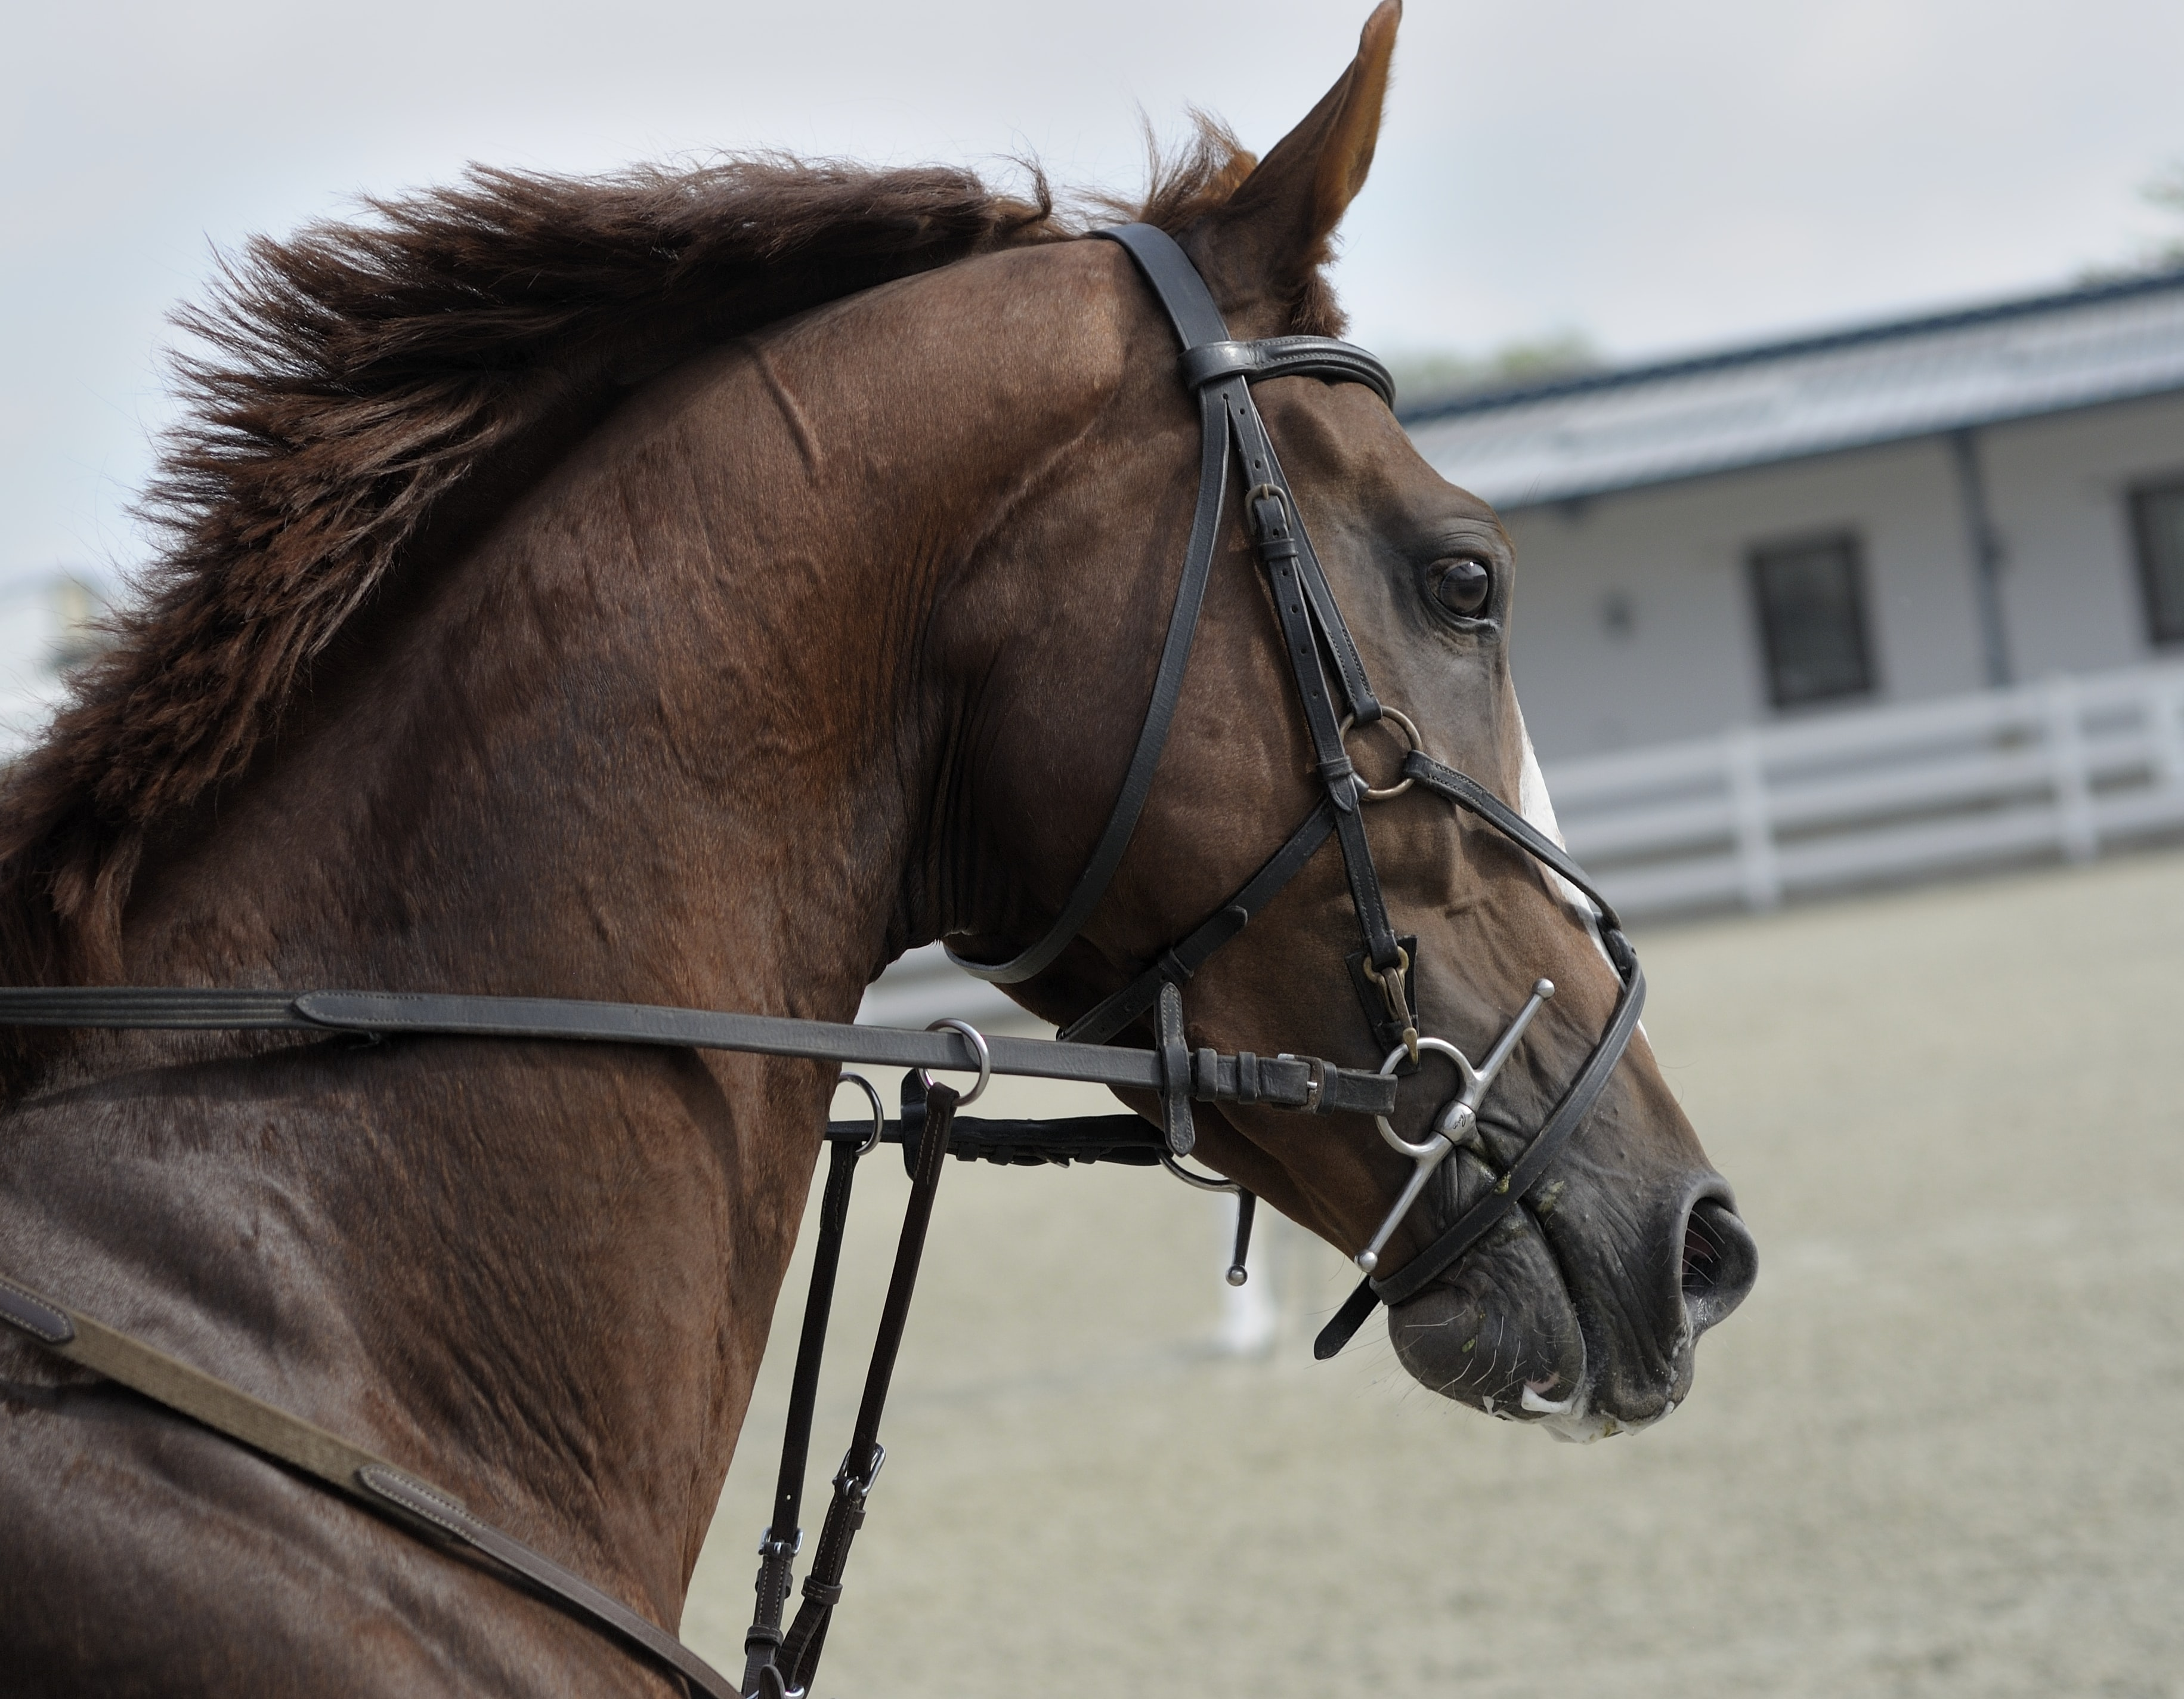 The side of a head of a brown stallion with a leather bridle